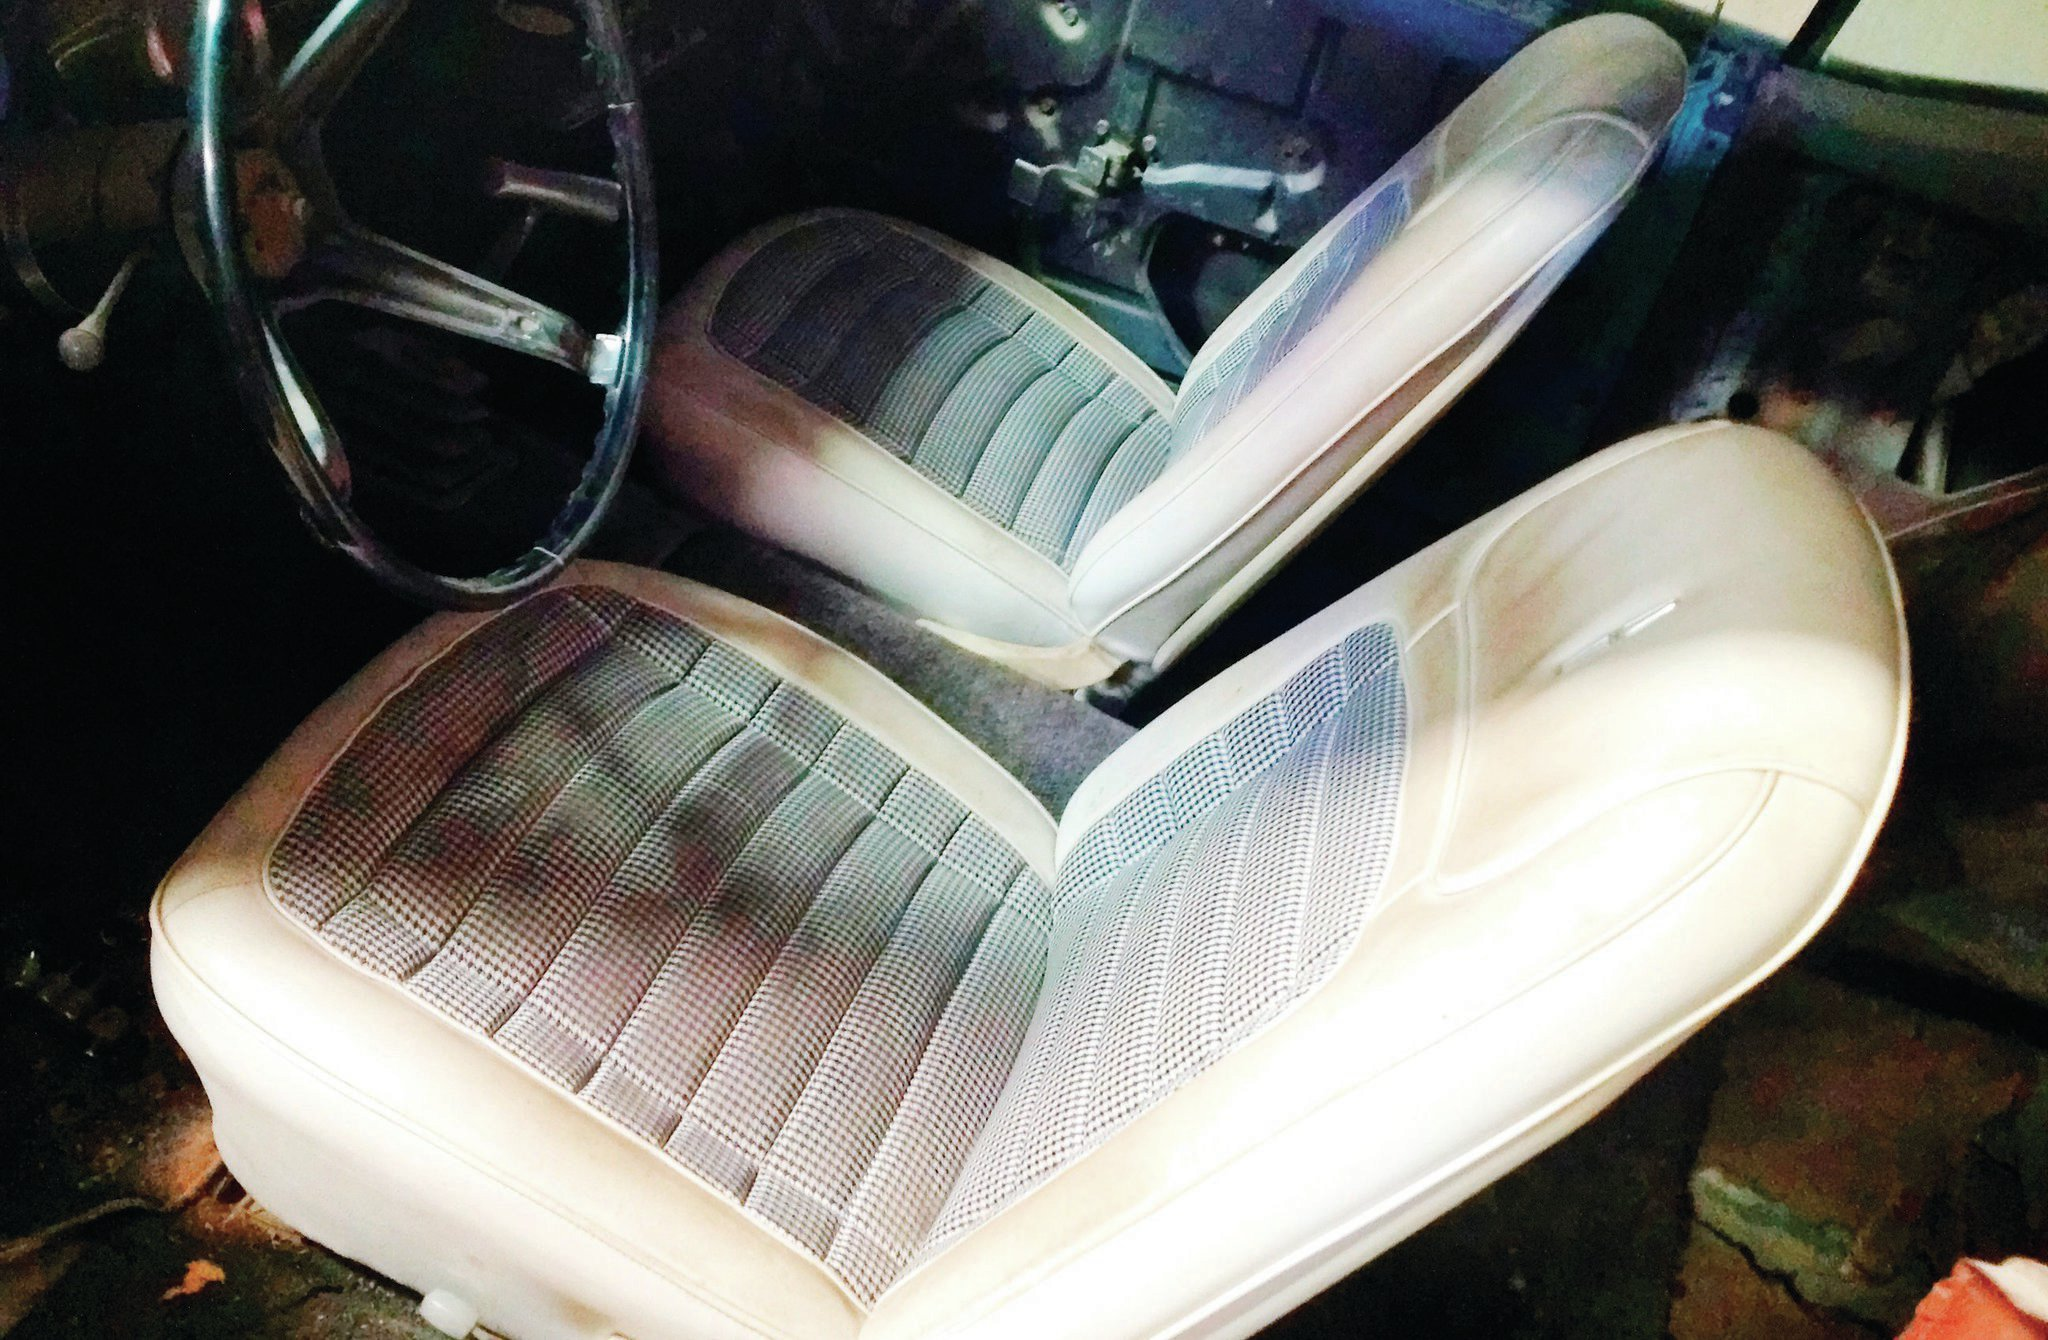 Mark Helm was elated with the deluxe white Houndstooth interior, very rare on a 1968 model.